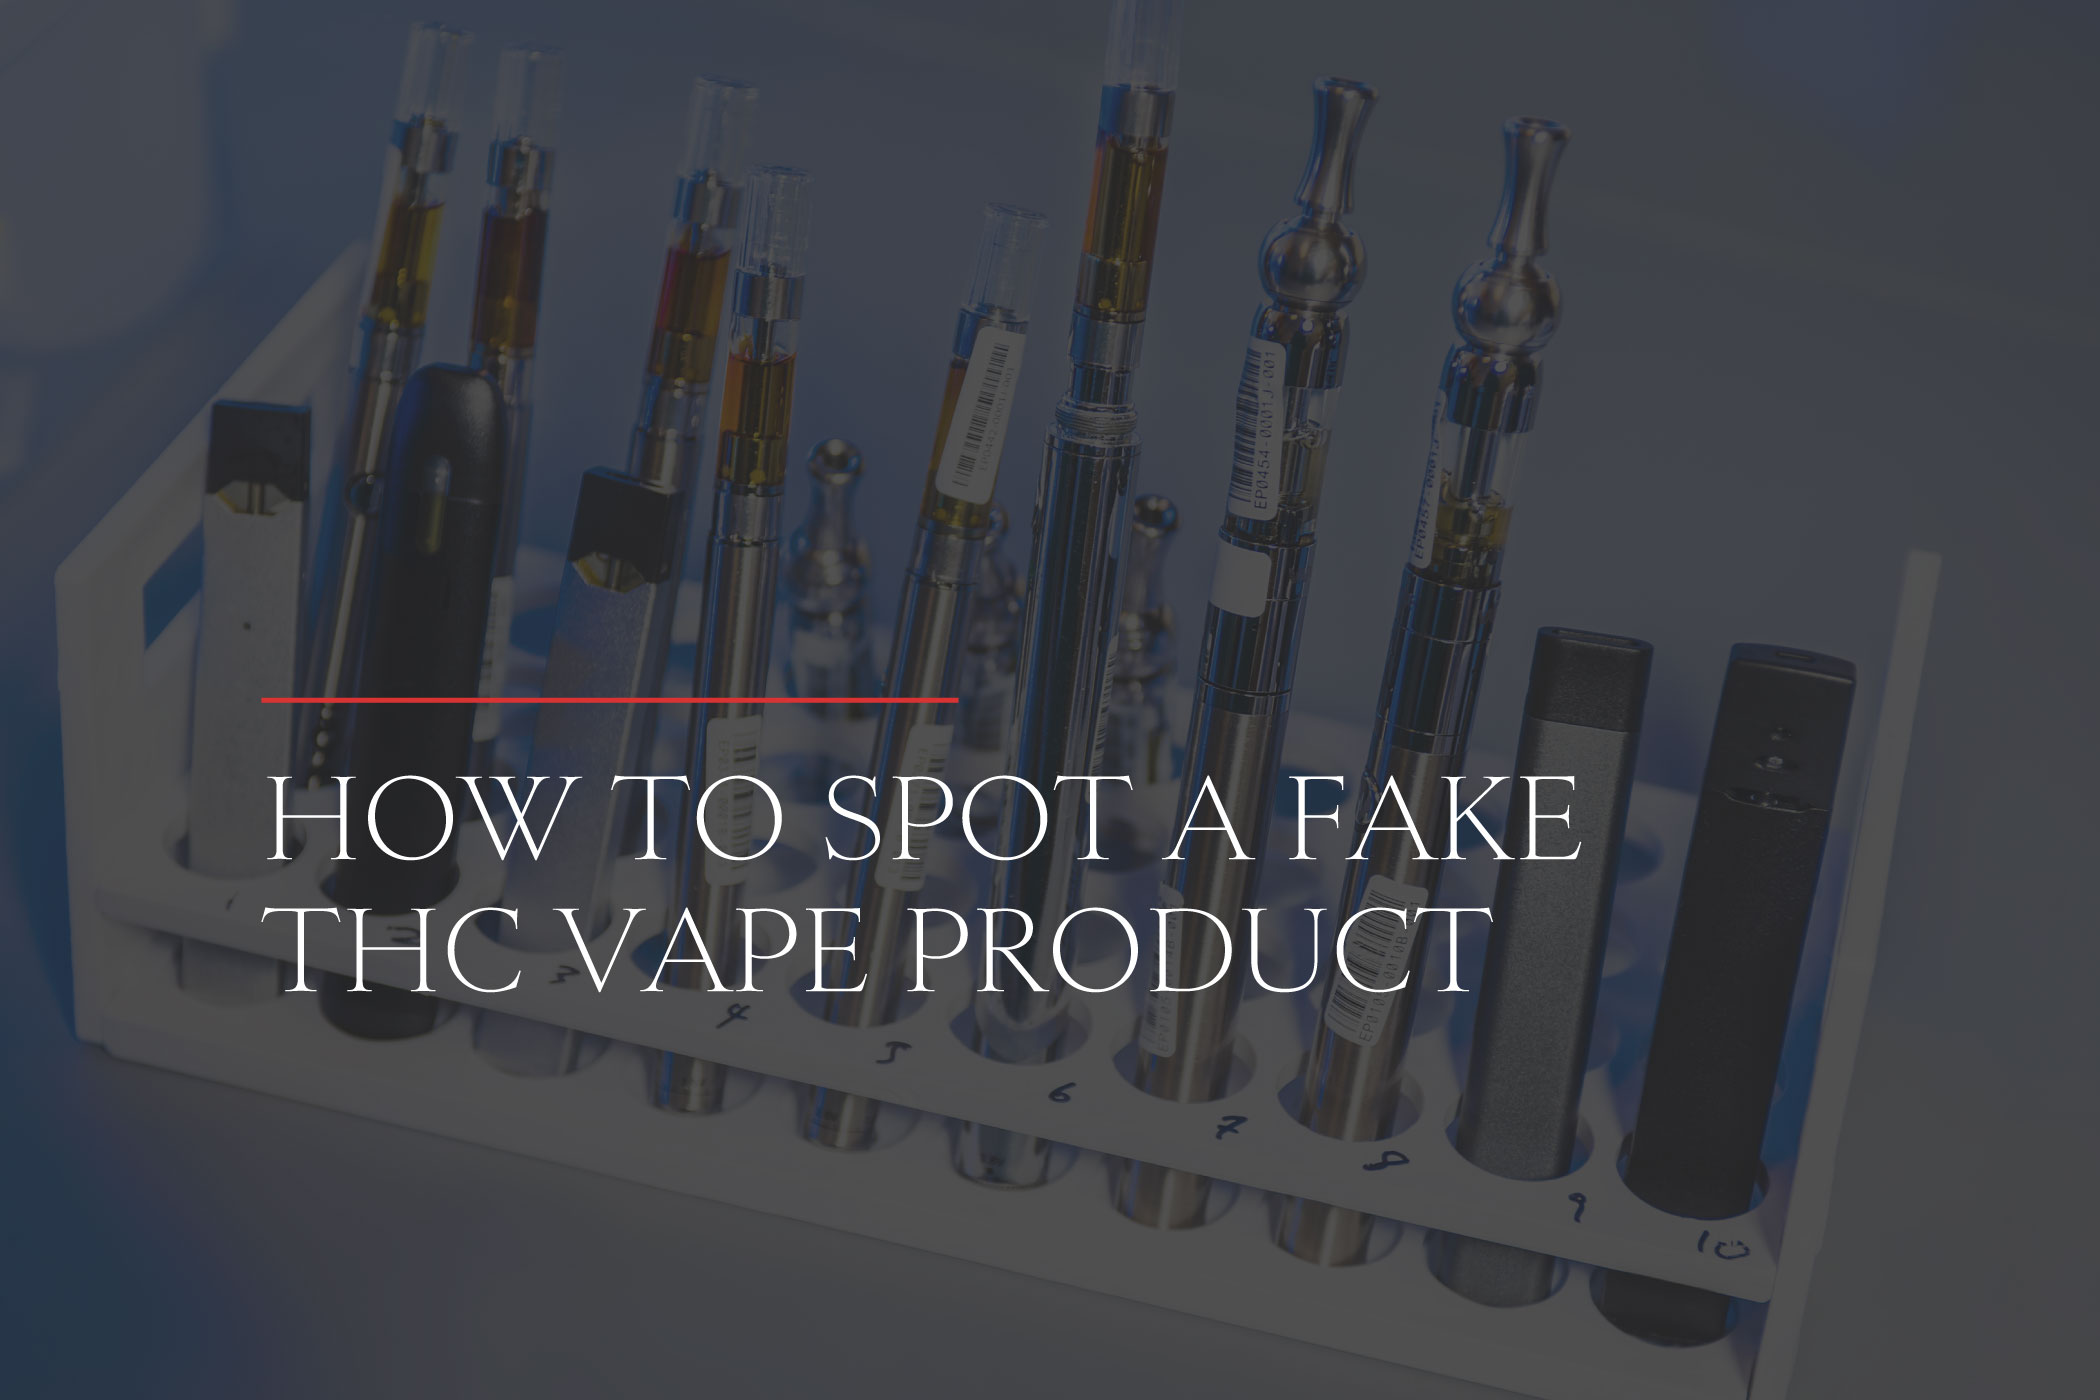 how to spot a fake thc vape product